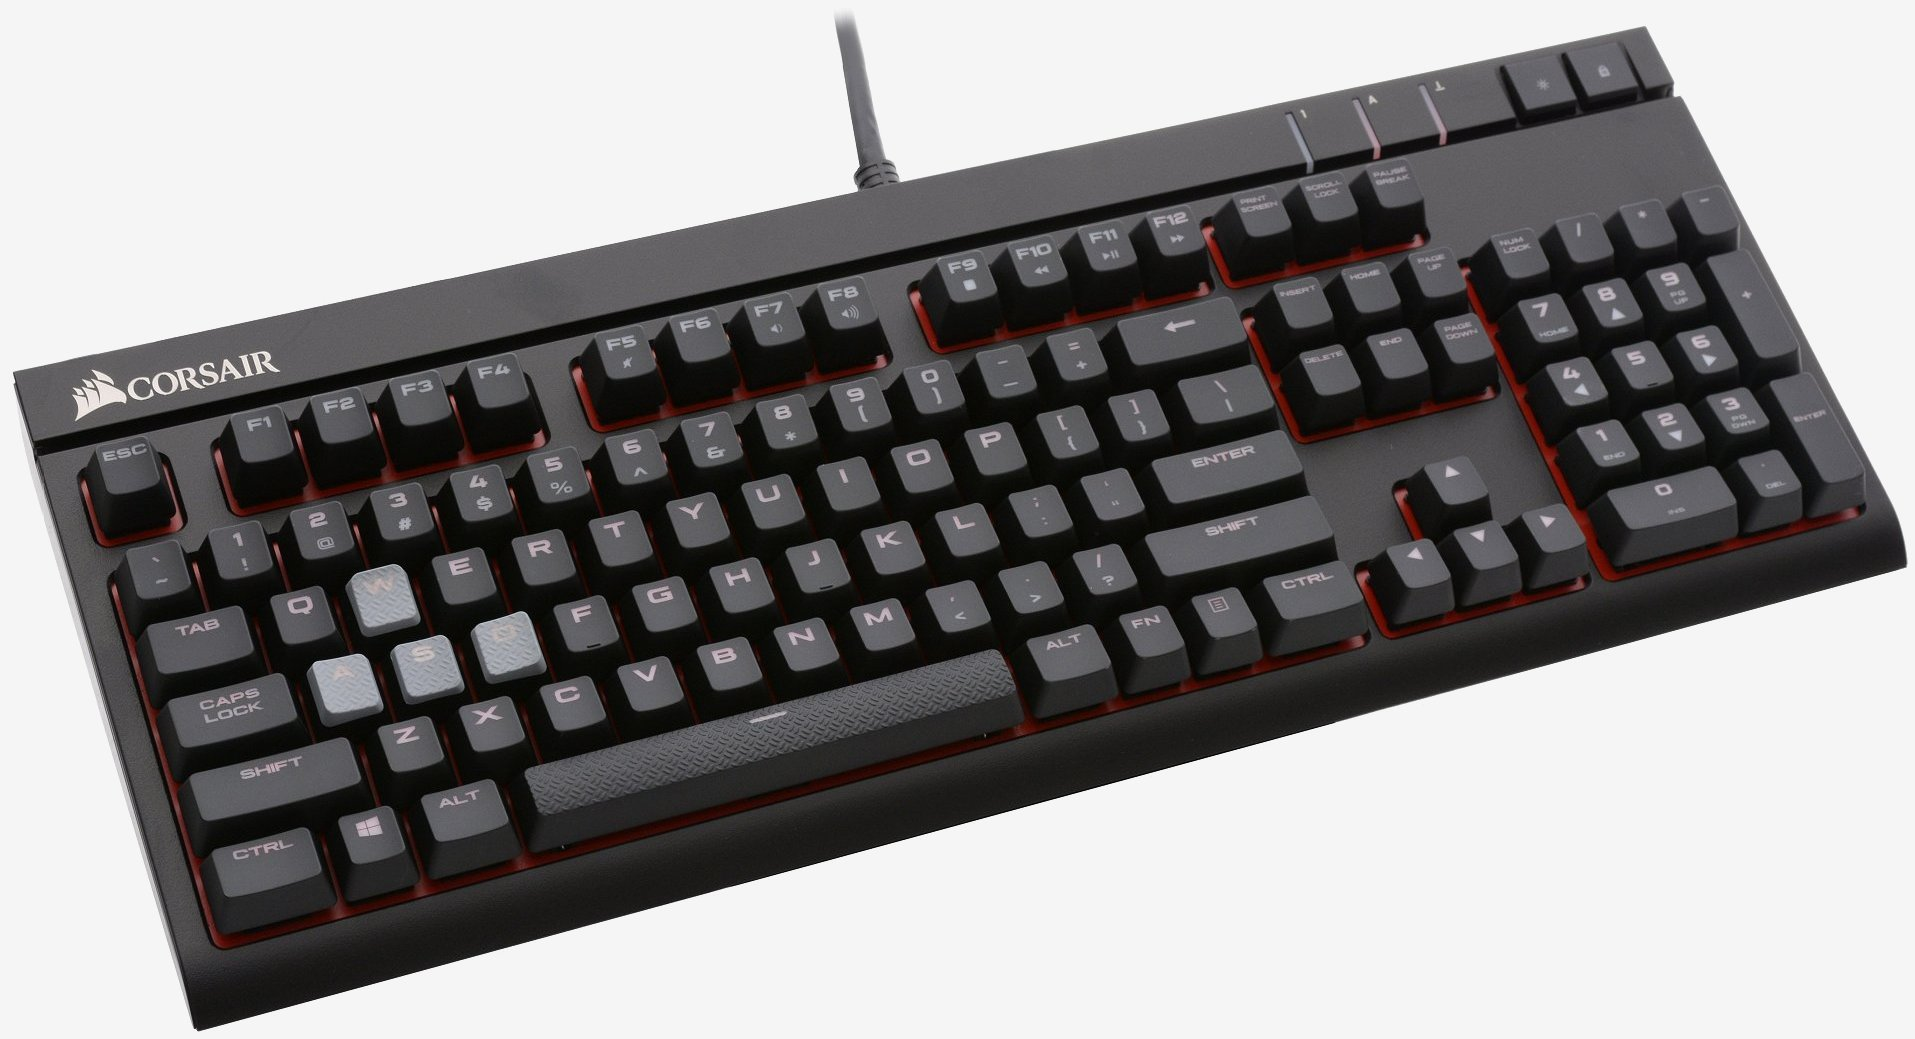 0344857cb9c The Strafe is certainly more of a budget-oriented mechanical gaming keyboard  when compared to what Corsair has been working on over the past year or so,  ...